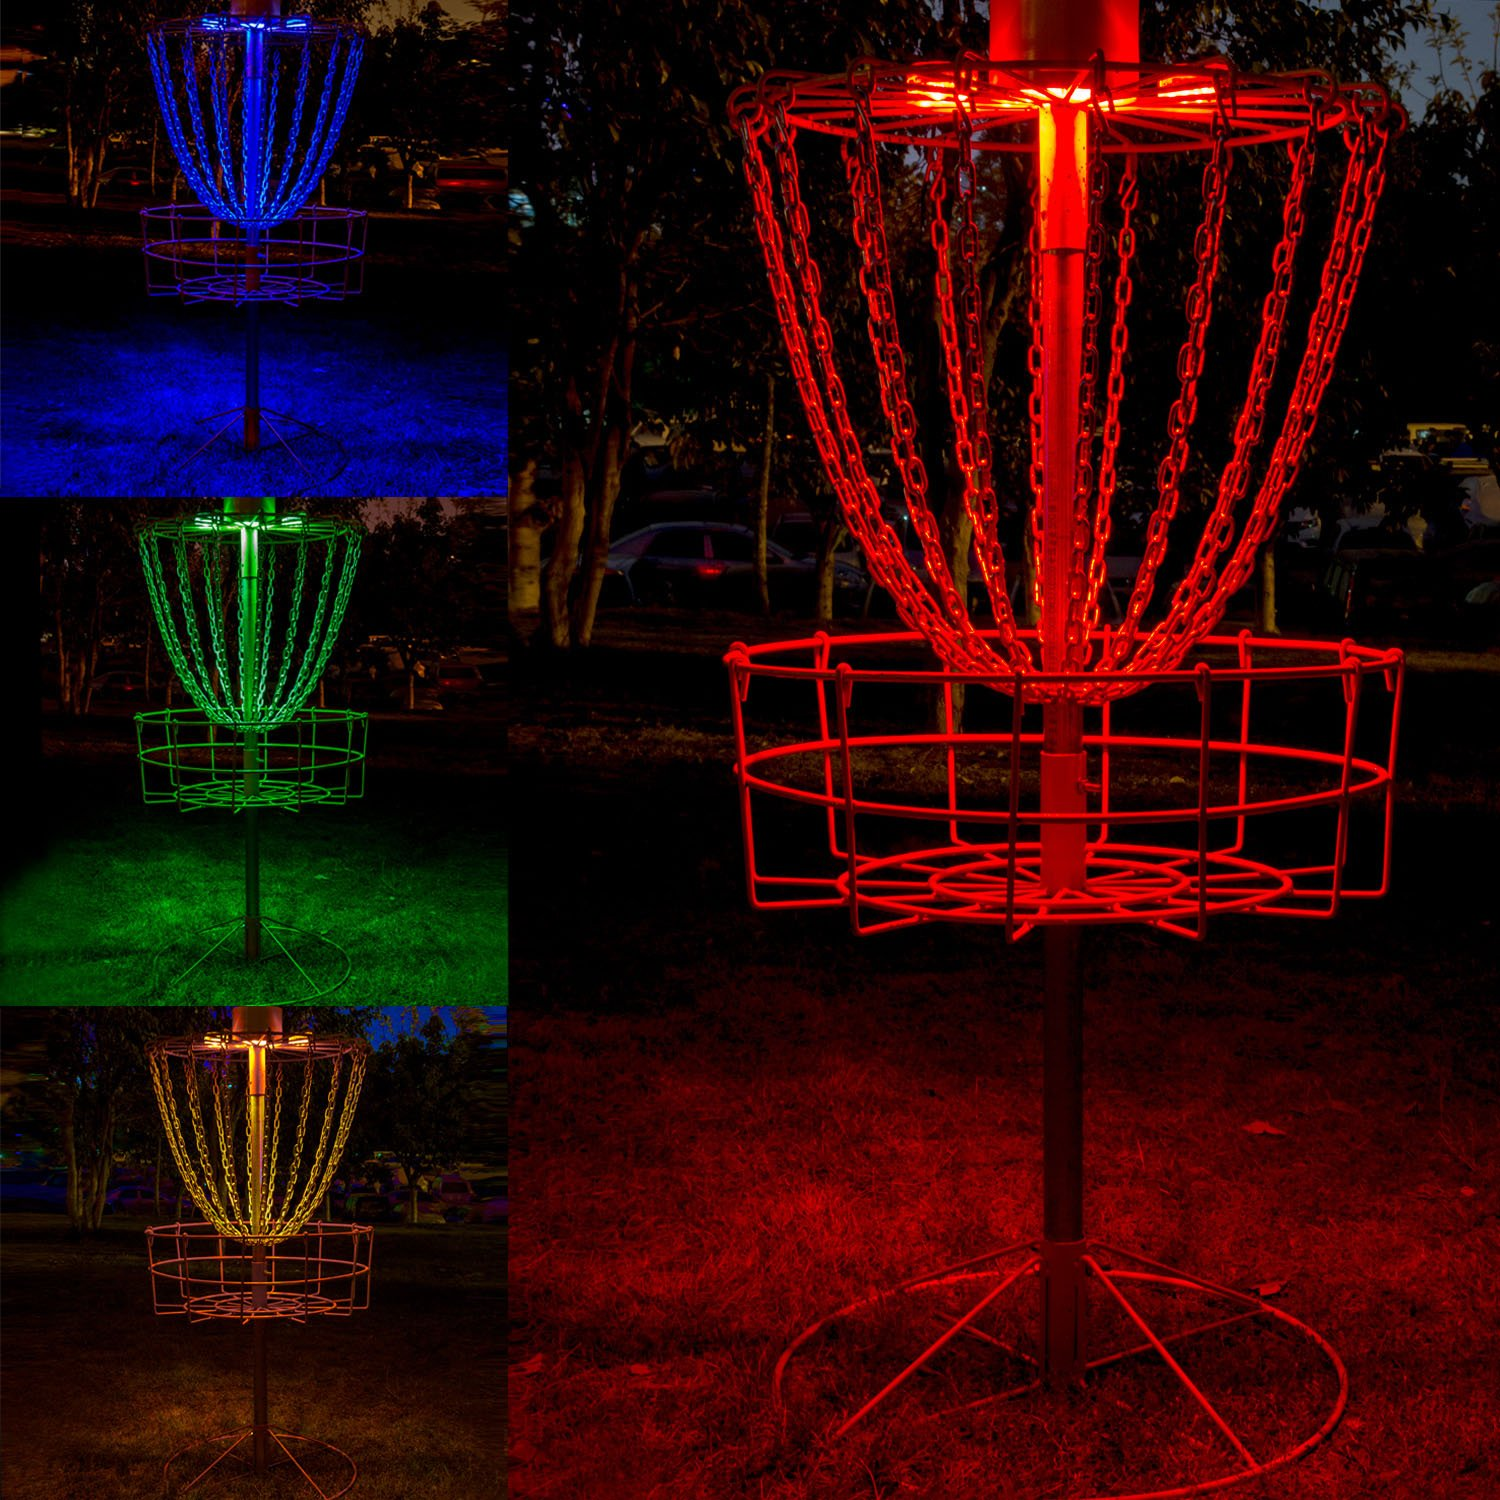 YiePhiot Disc Golf Basket Lights, Water Proof Multi Color LED Lights with Remote Control Color Changing Modes, and Velcro to Attach, Basket Not Included (2 Led Lights) by YiePhiot